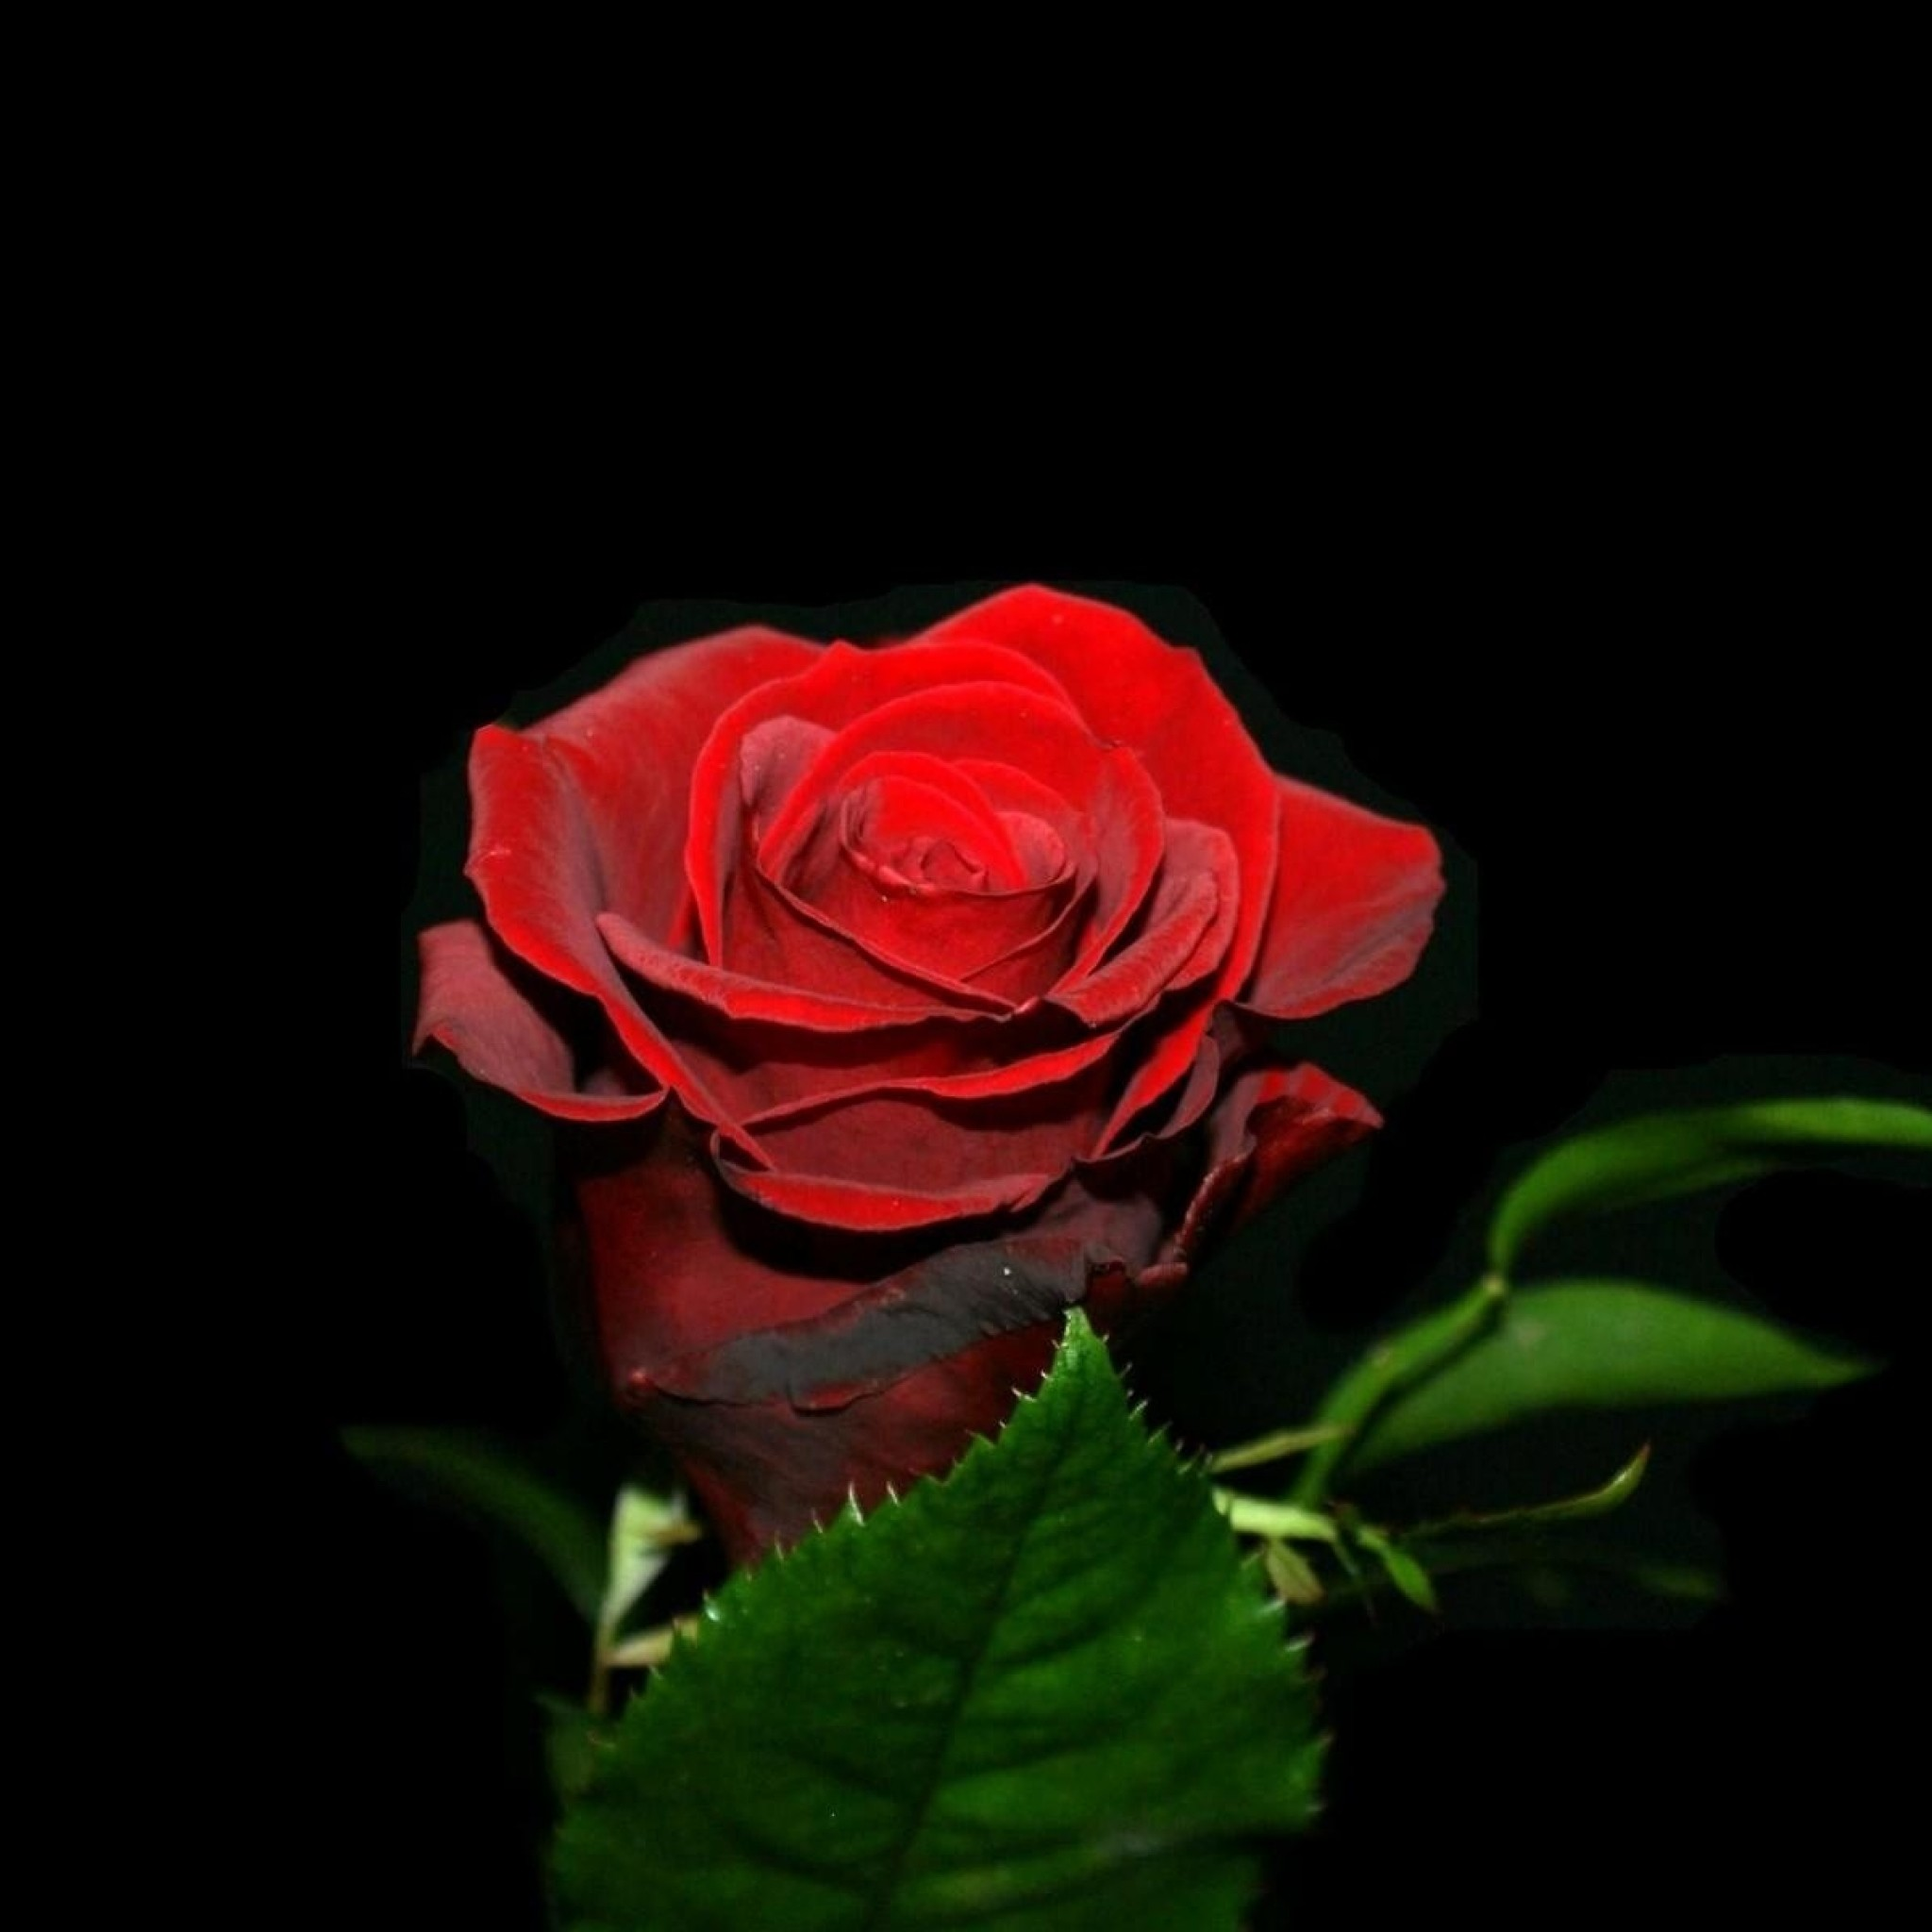 Red Rose With Black Background (42+ Images